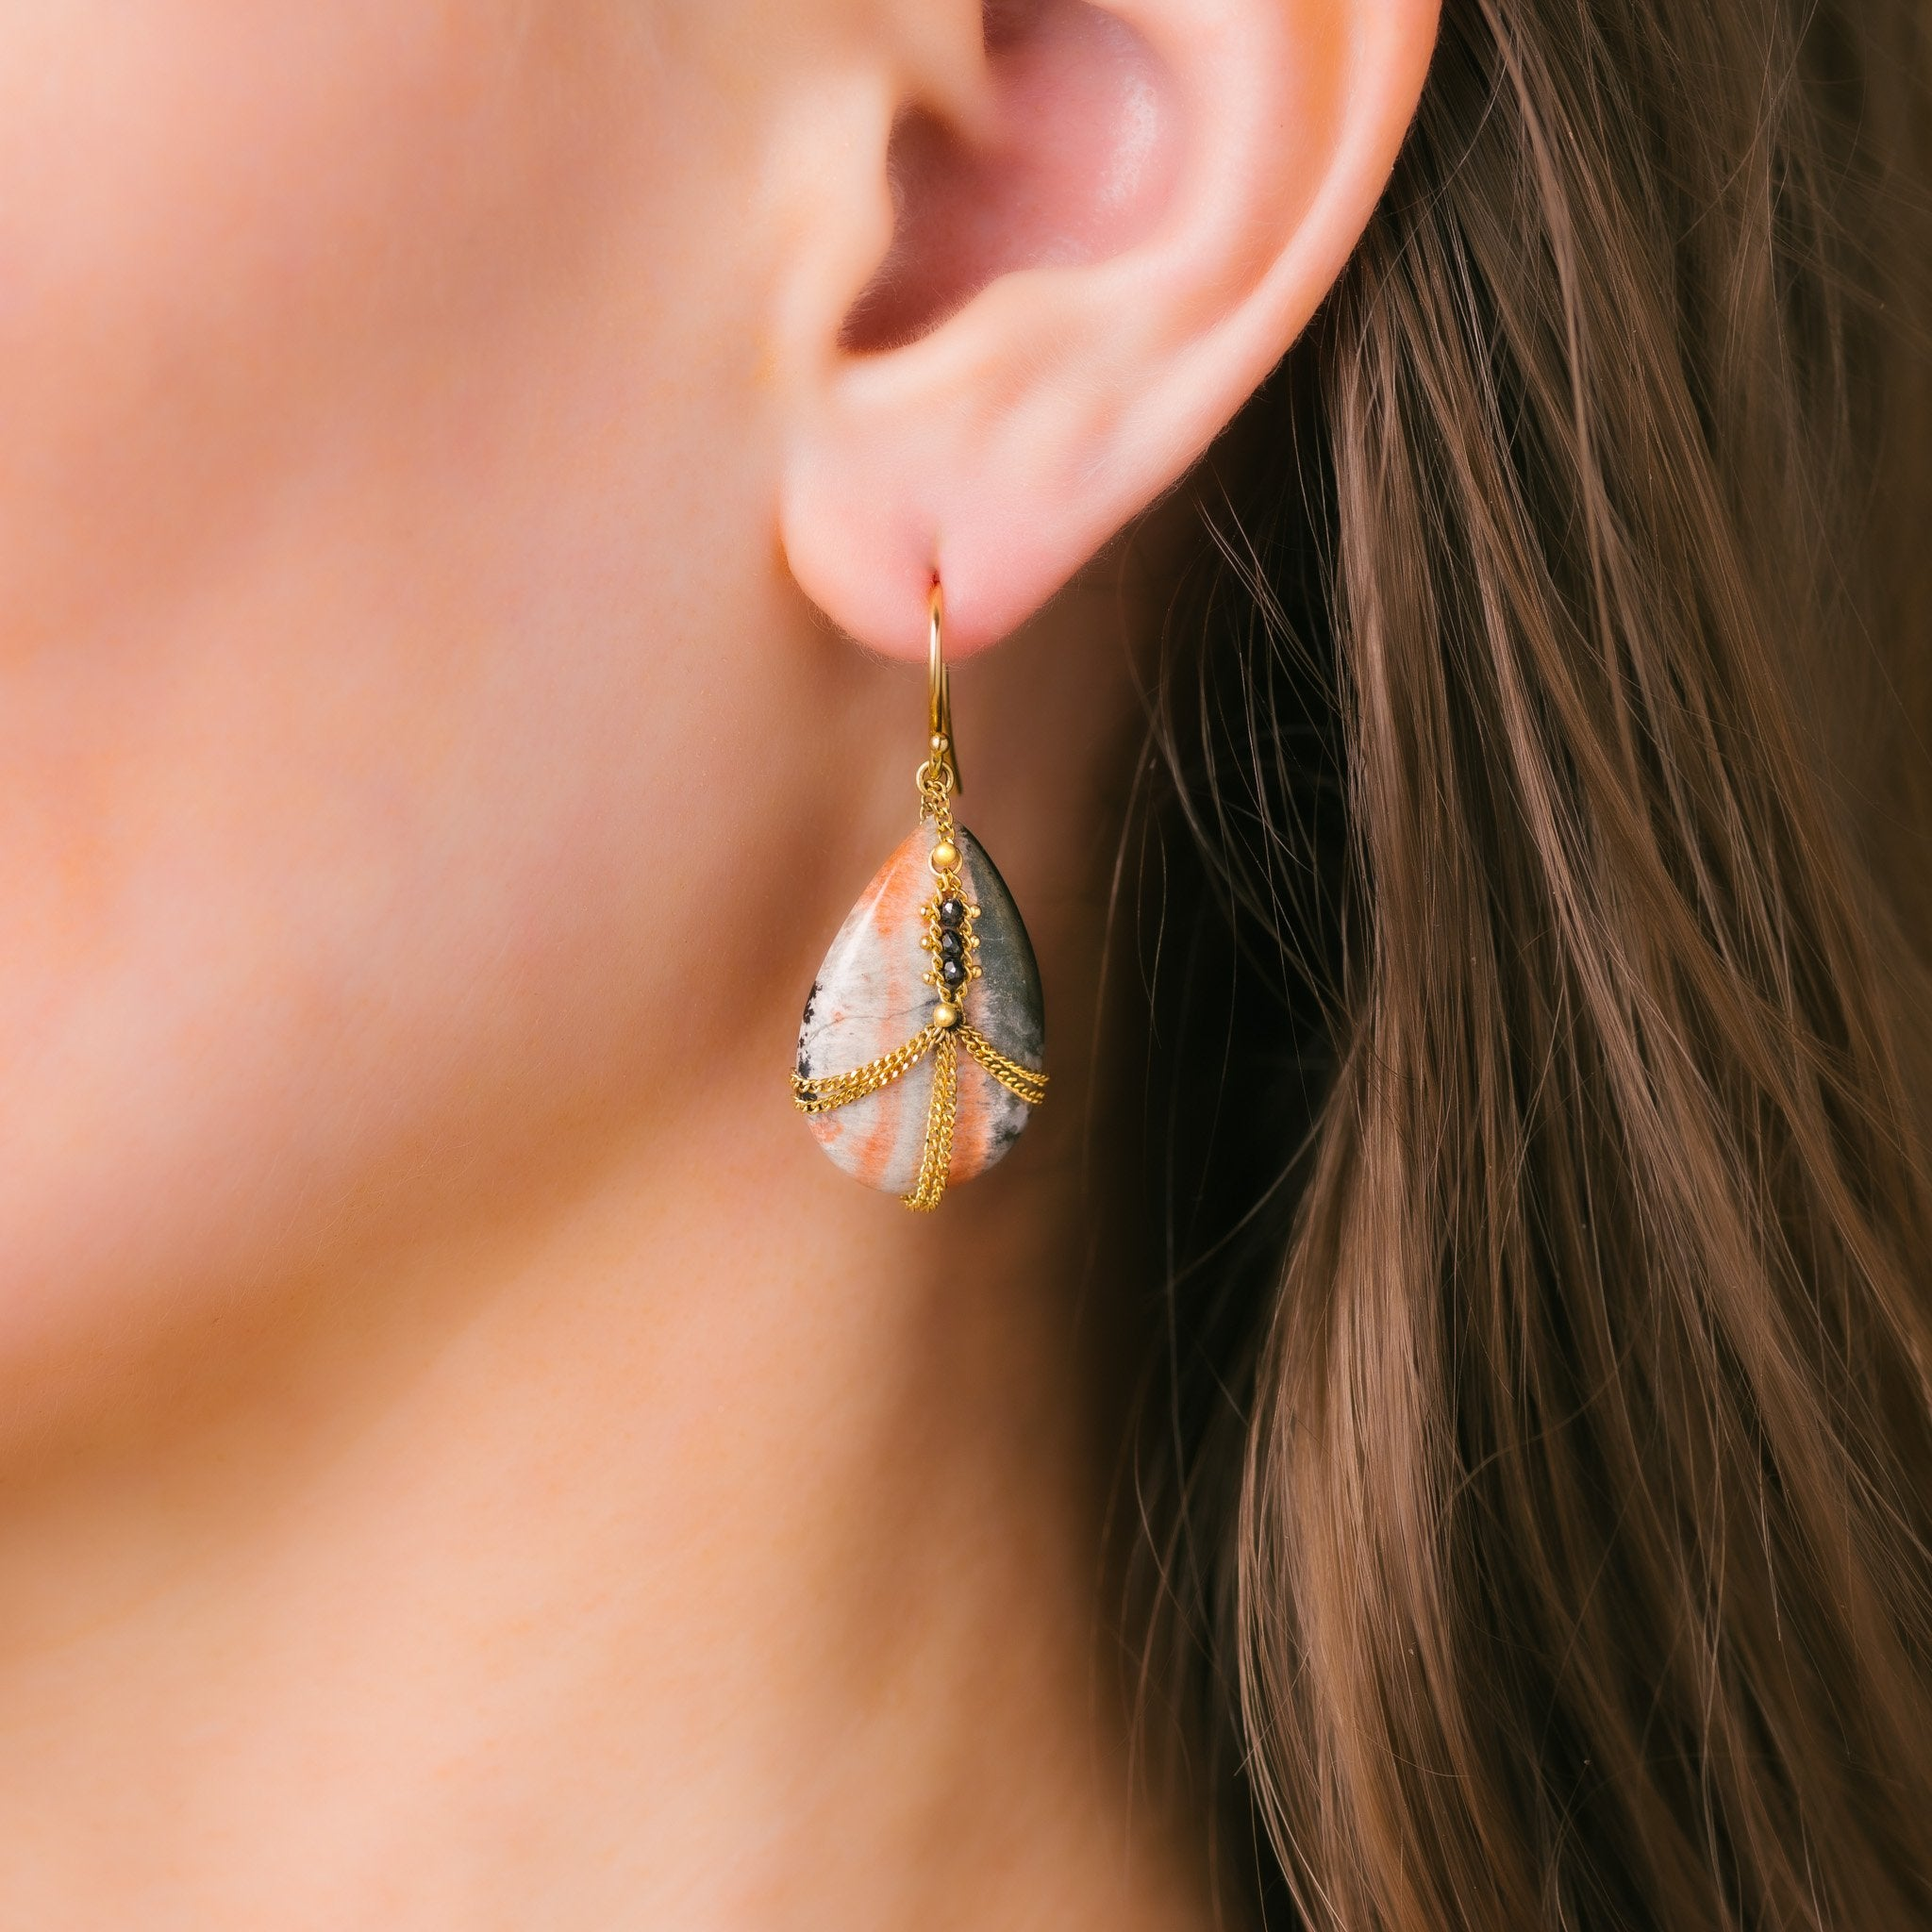 Black Diamond Draped Celestobarite Earrings on an ear